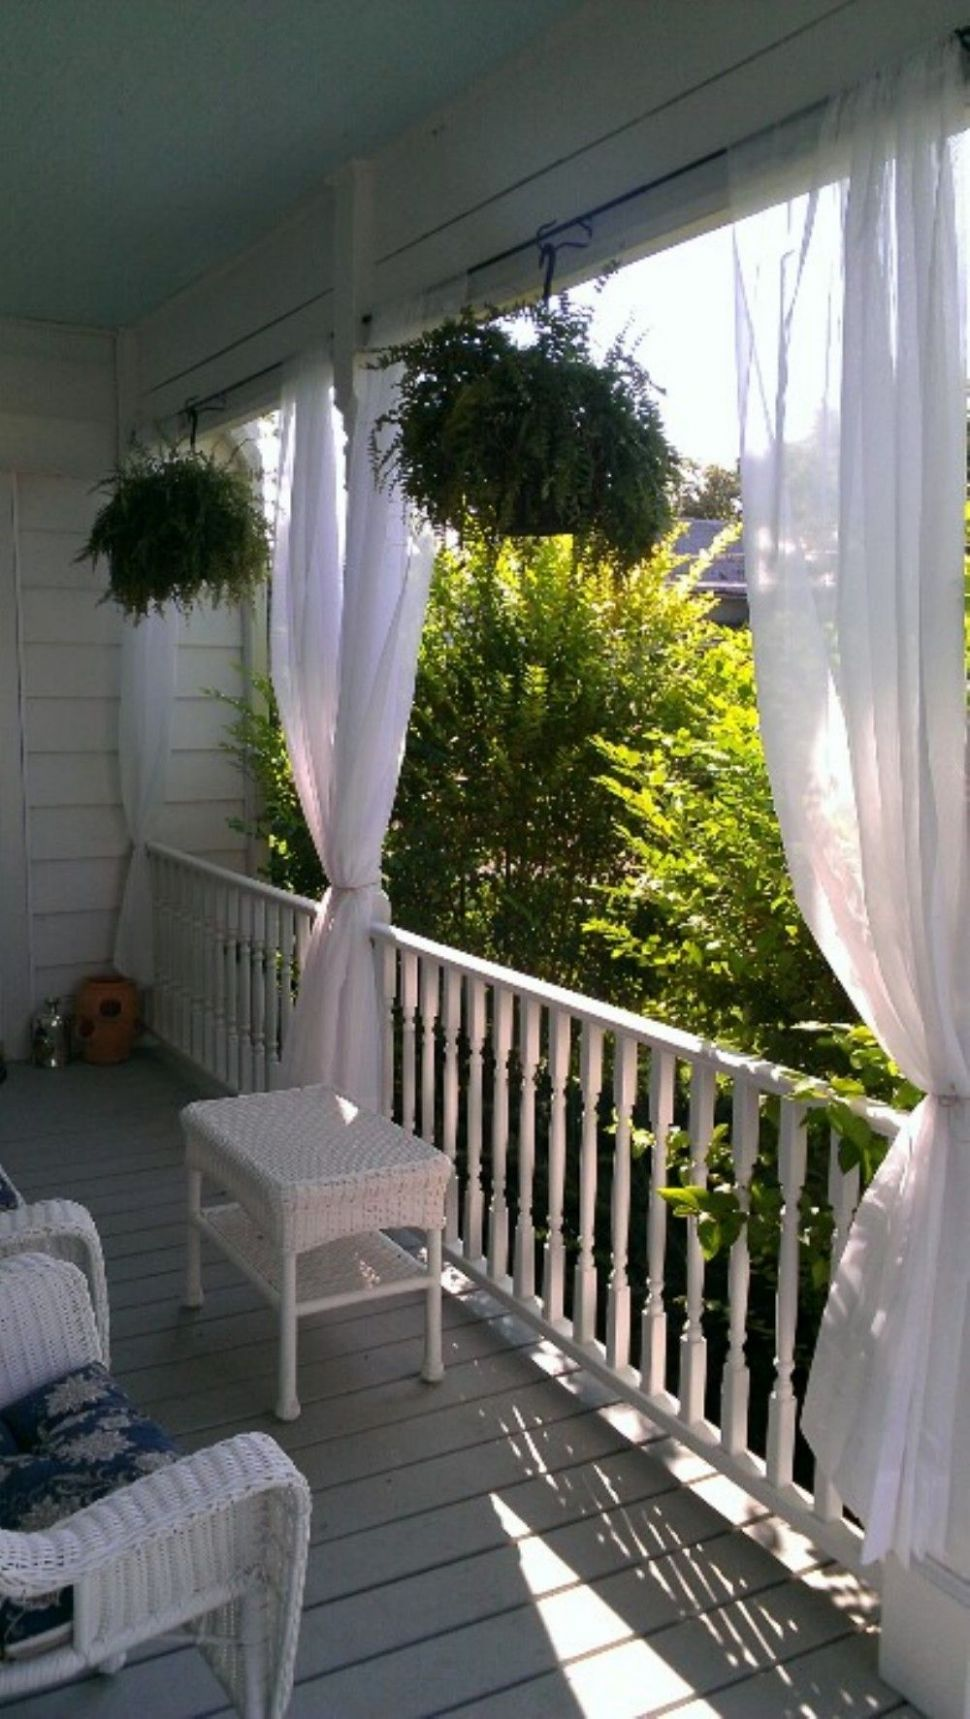 10 Private in Outdoor Space with Porch Curtains Privacy | Balcony ..